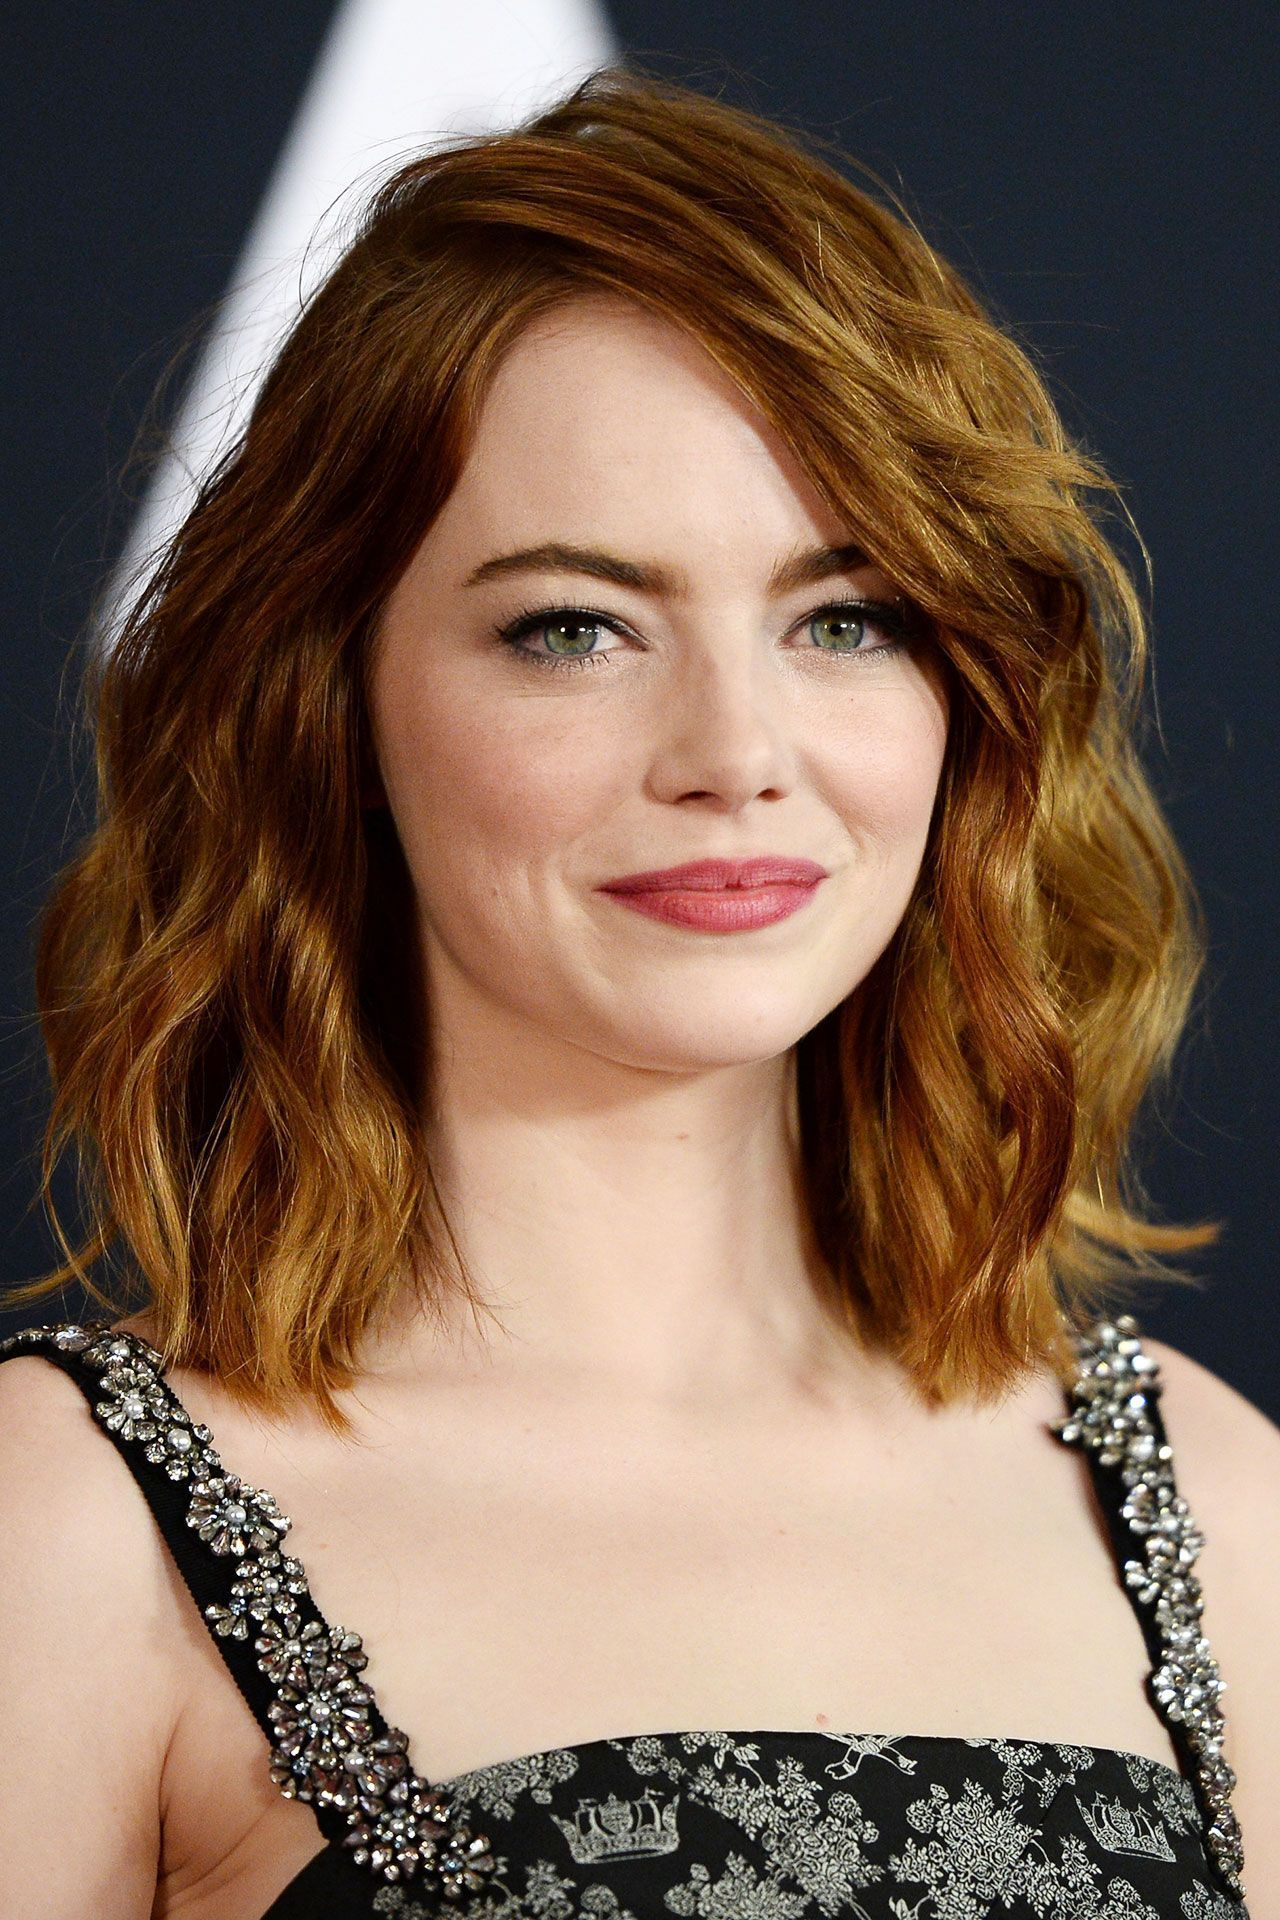 Hair Crush: Emma Stone is the Ultimate HairChameleon